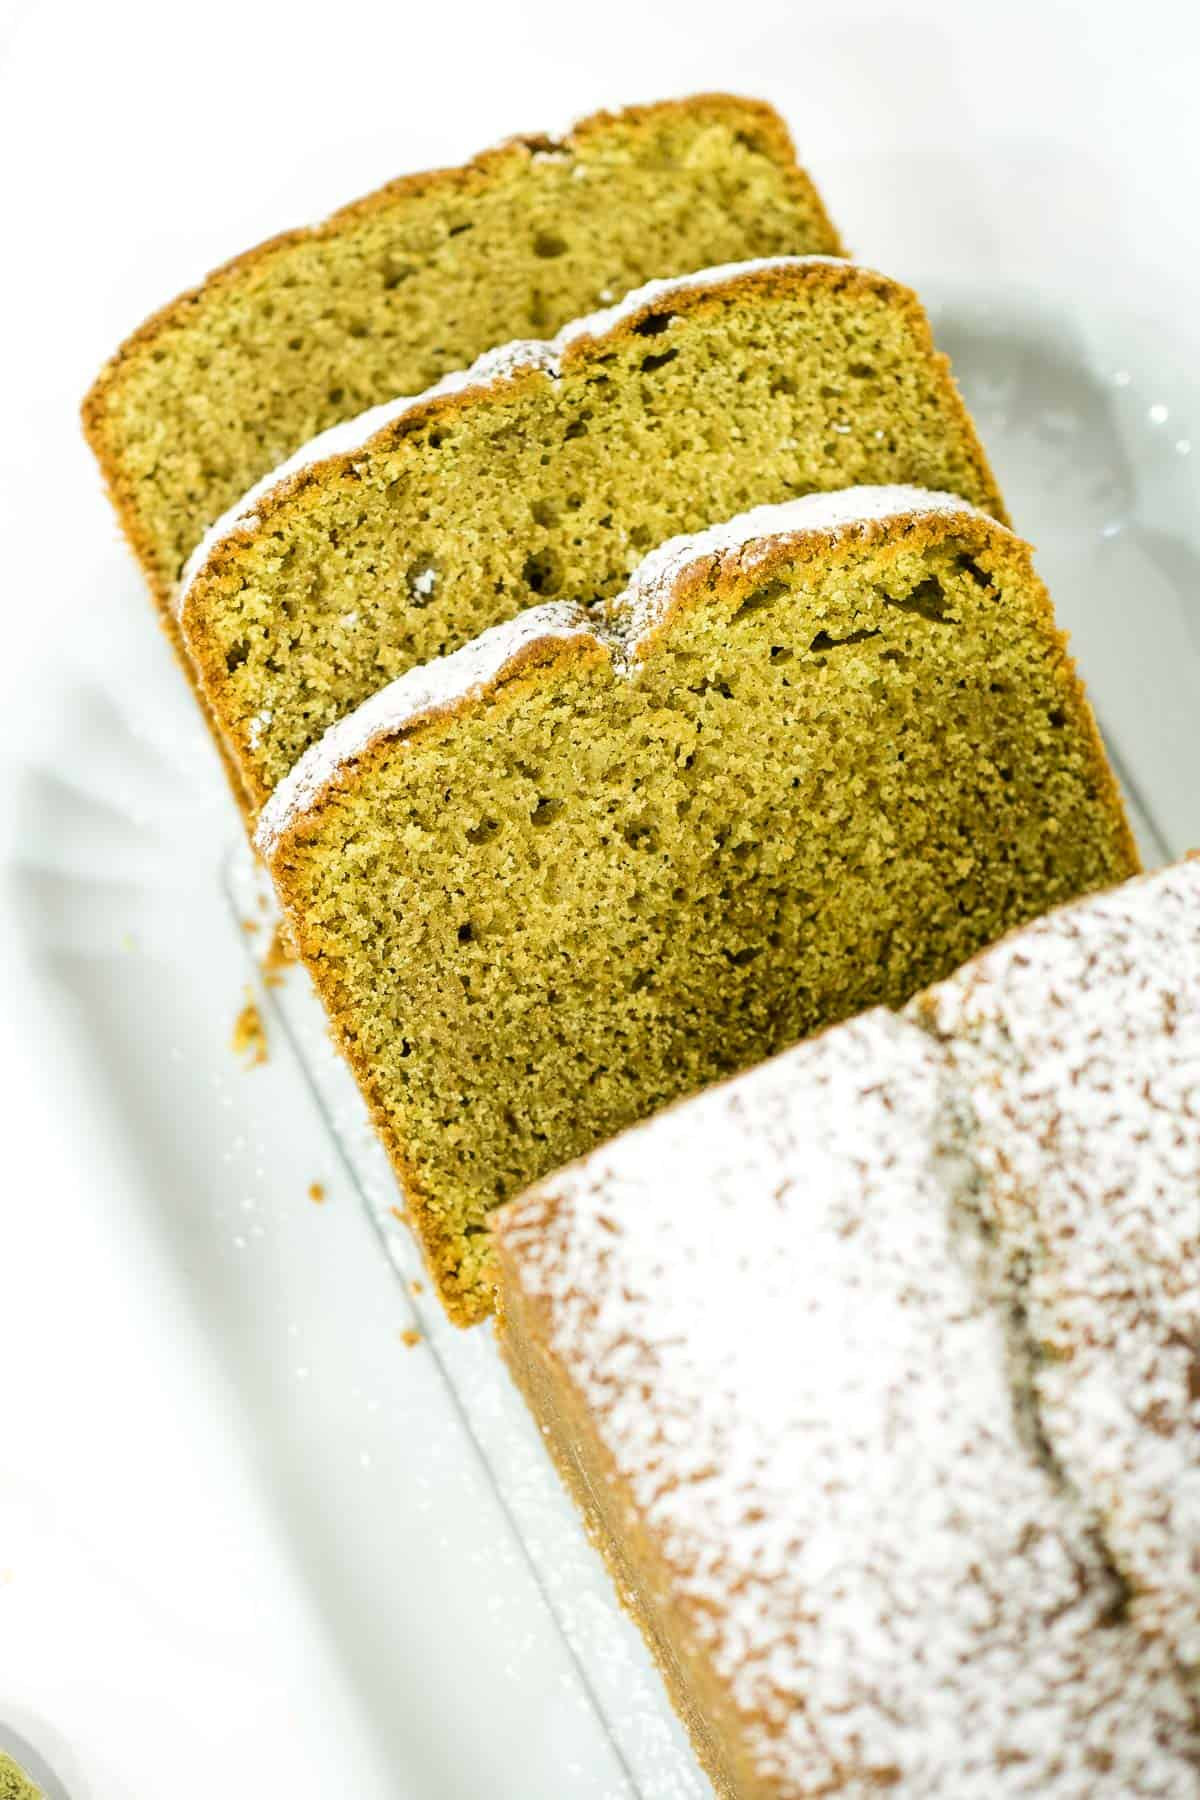 A loaf of matcha pound cake cut into slices